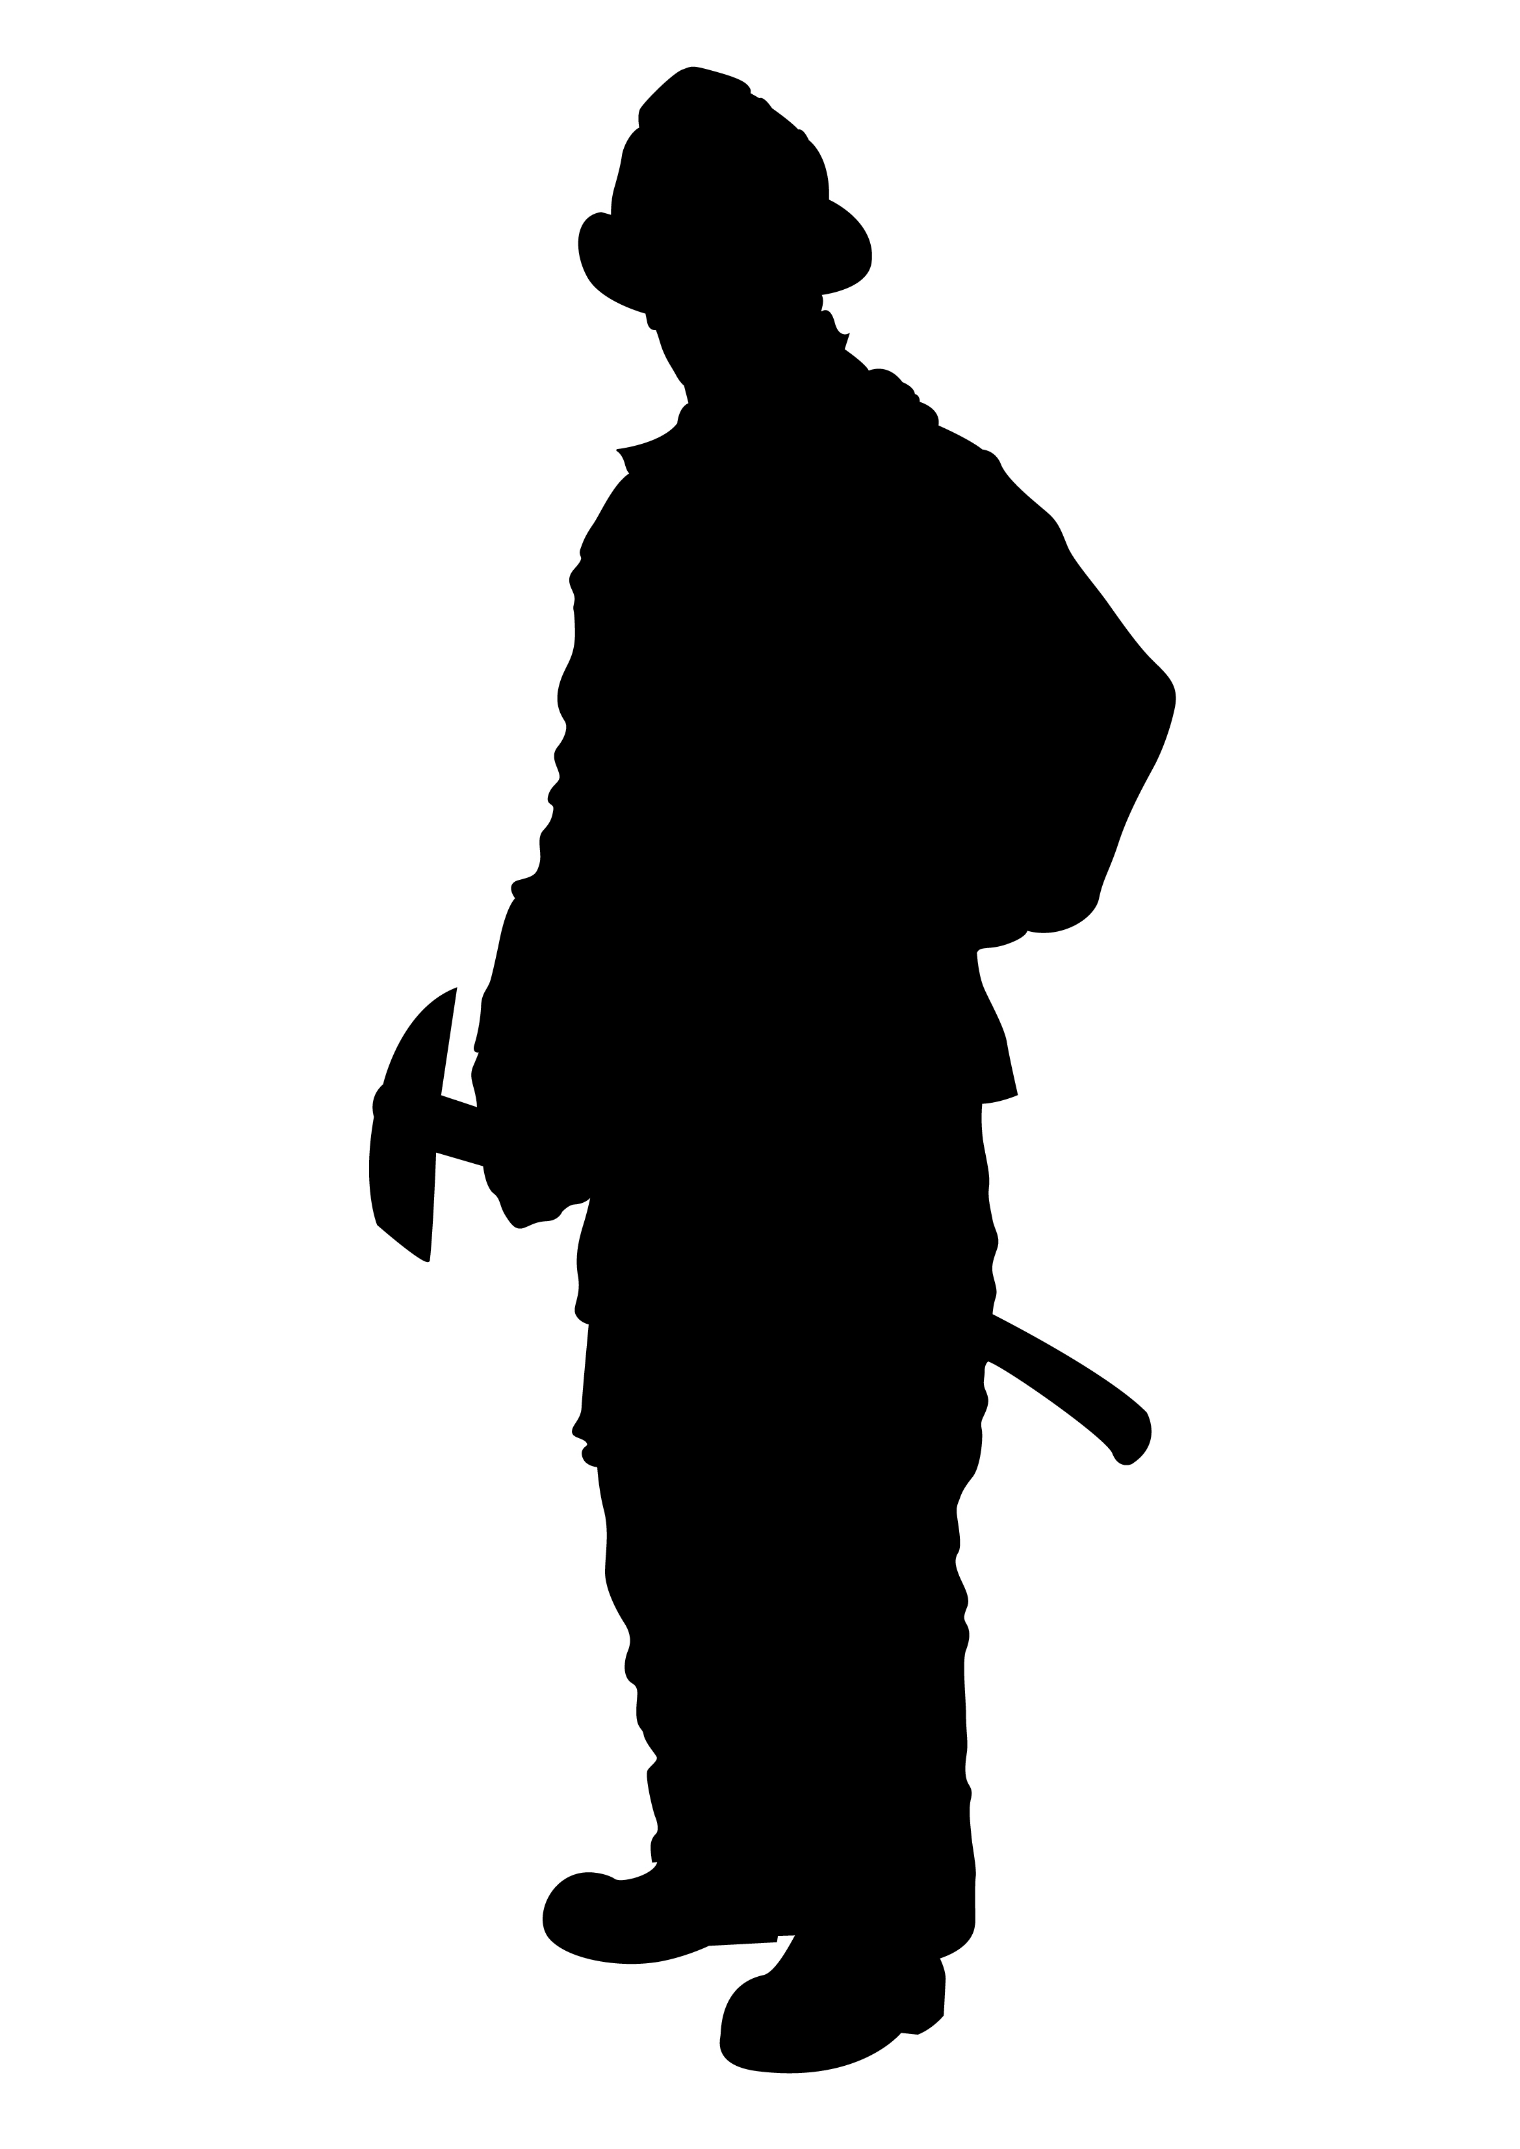 firefighter silhouette spearhead rescue silhouette firefighter